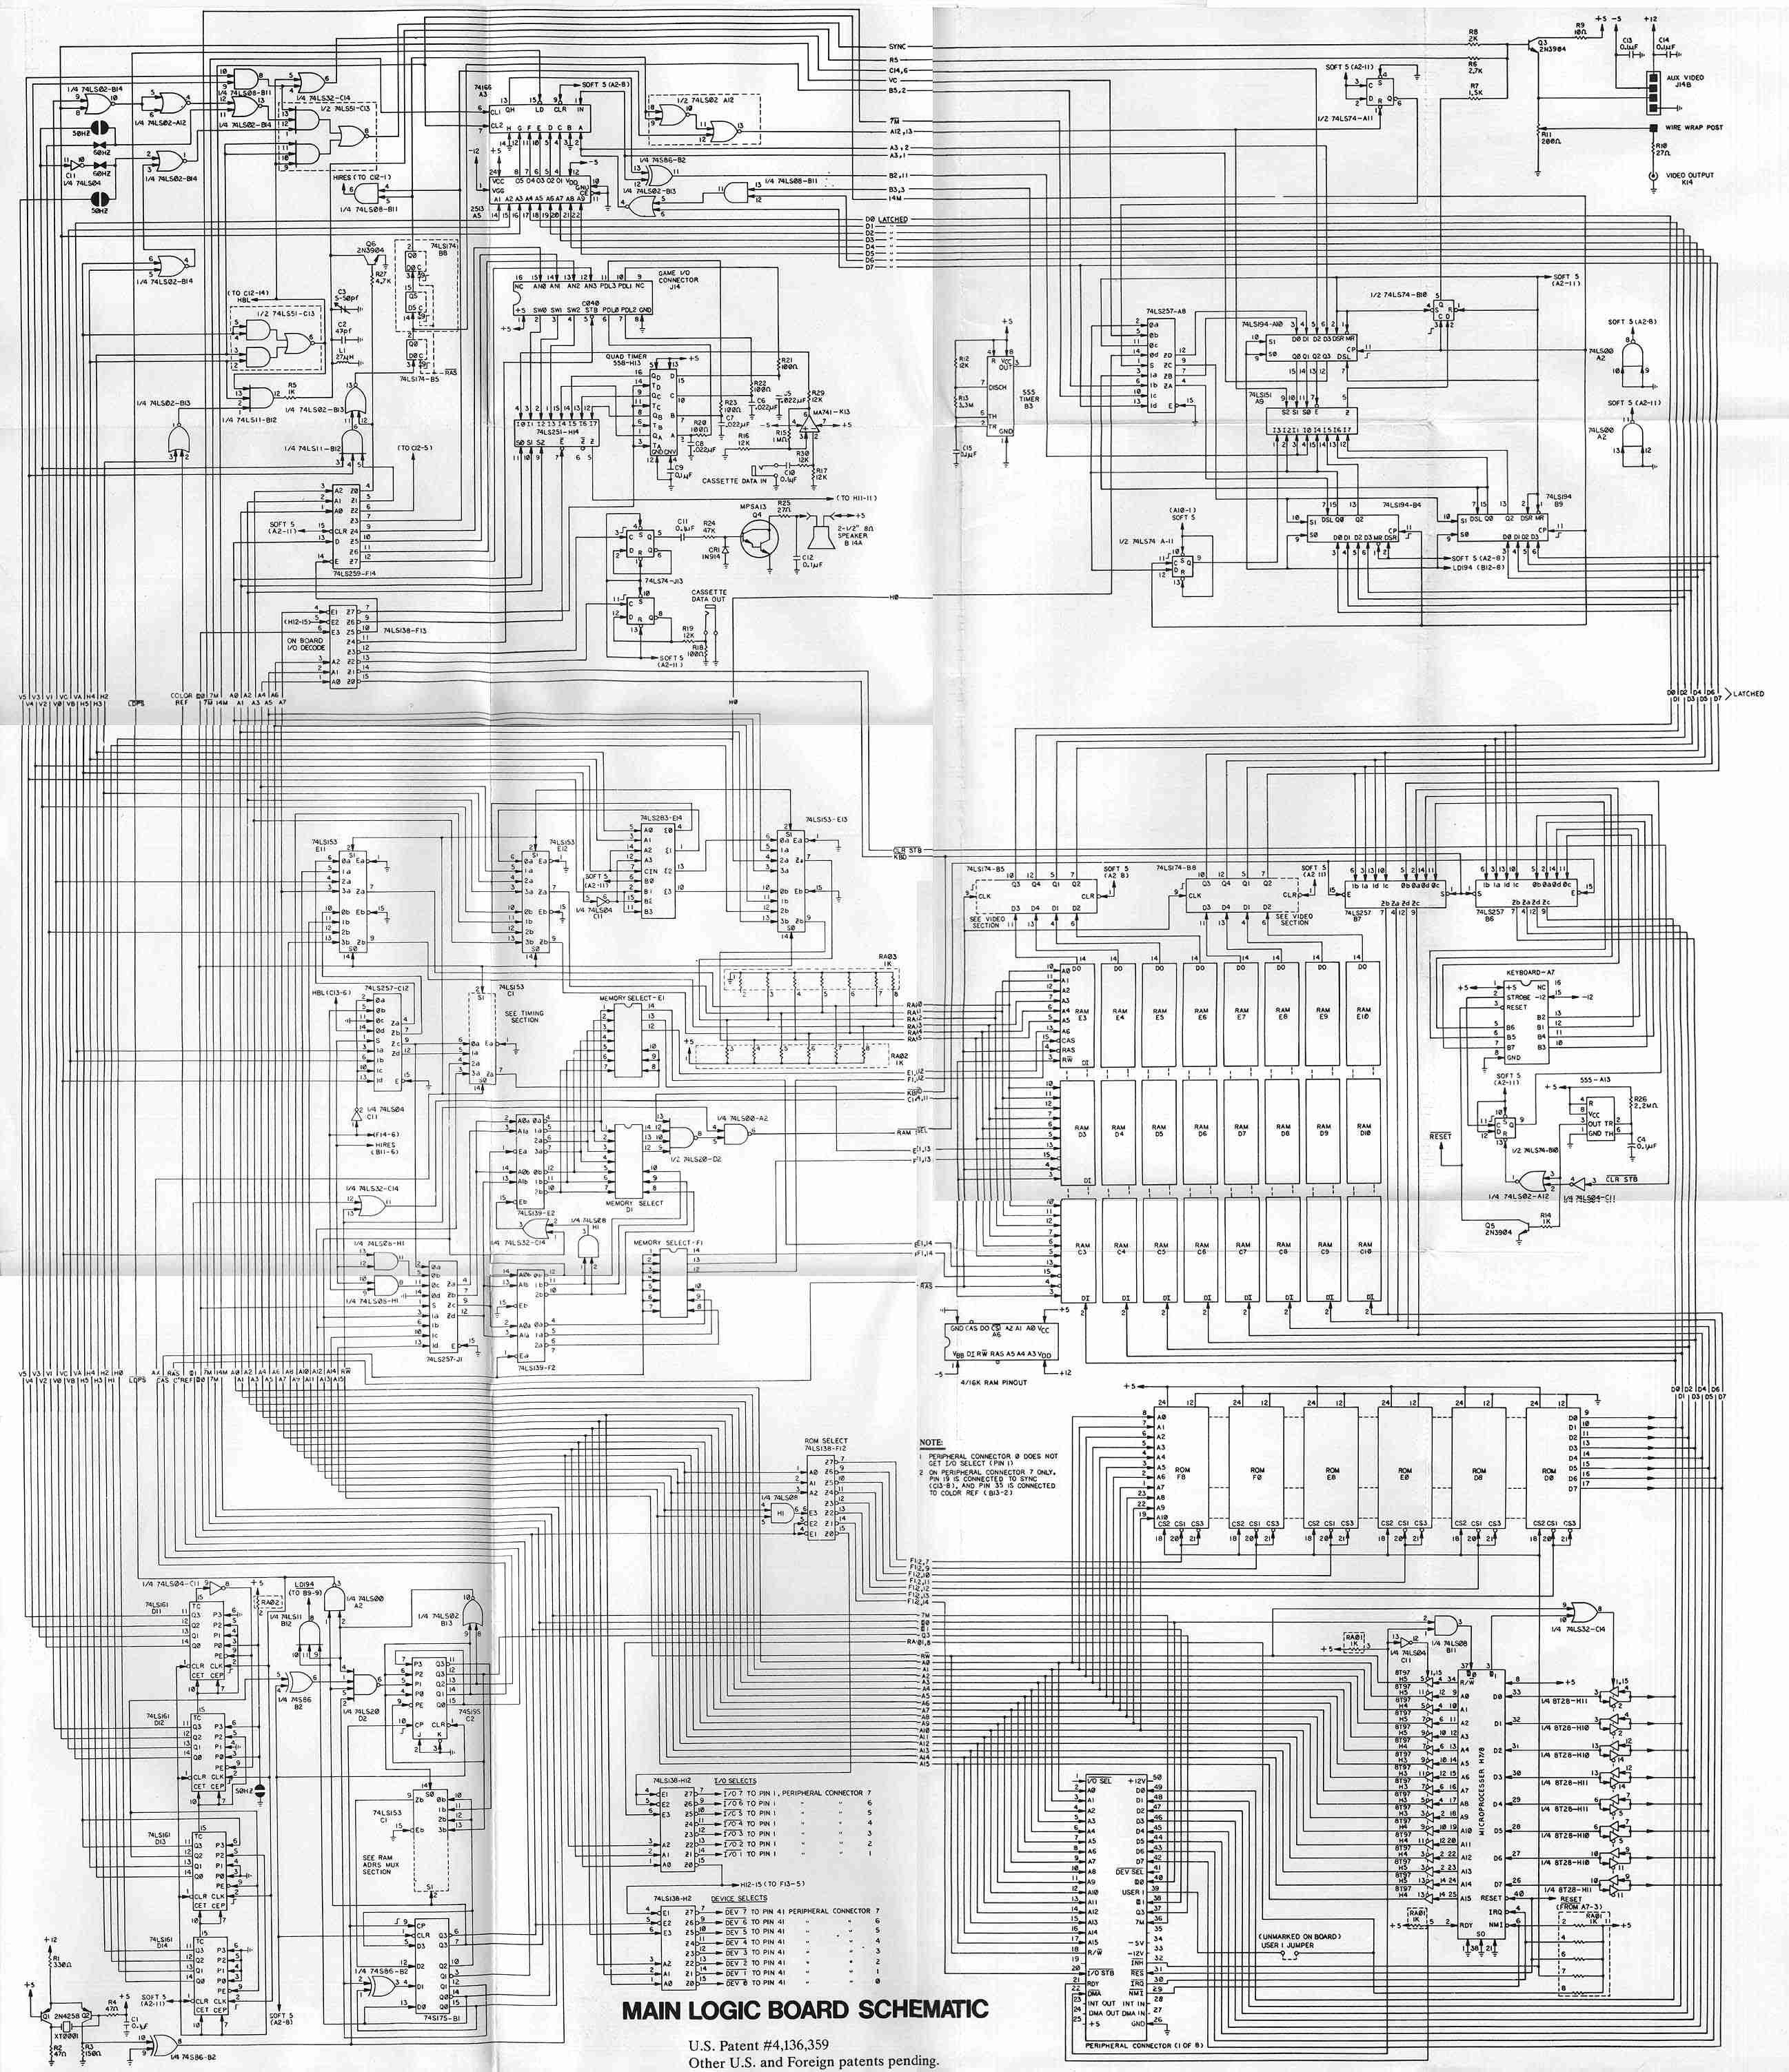 Apple 2 Main Logic Board Electronic Circuit Schematic | Apple ...